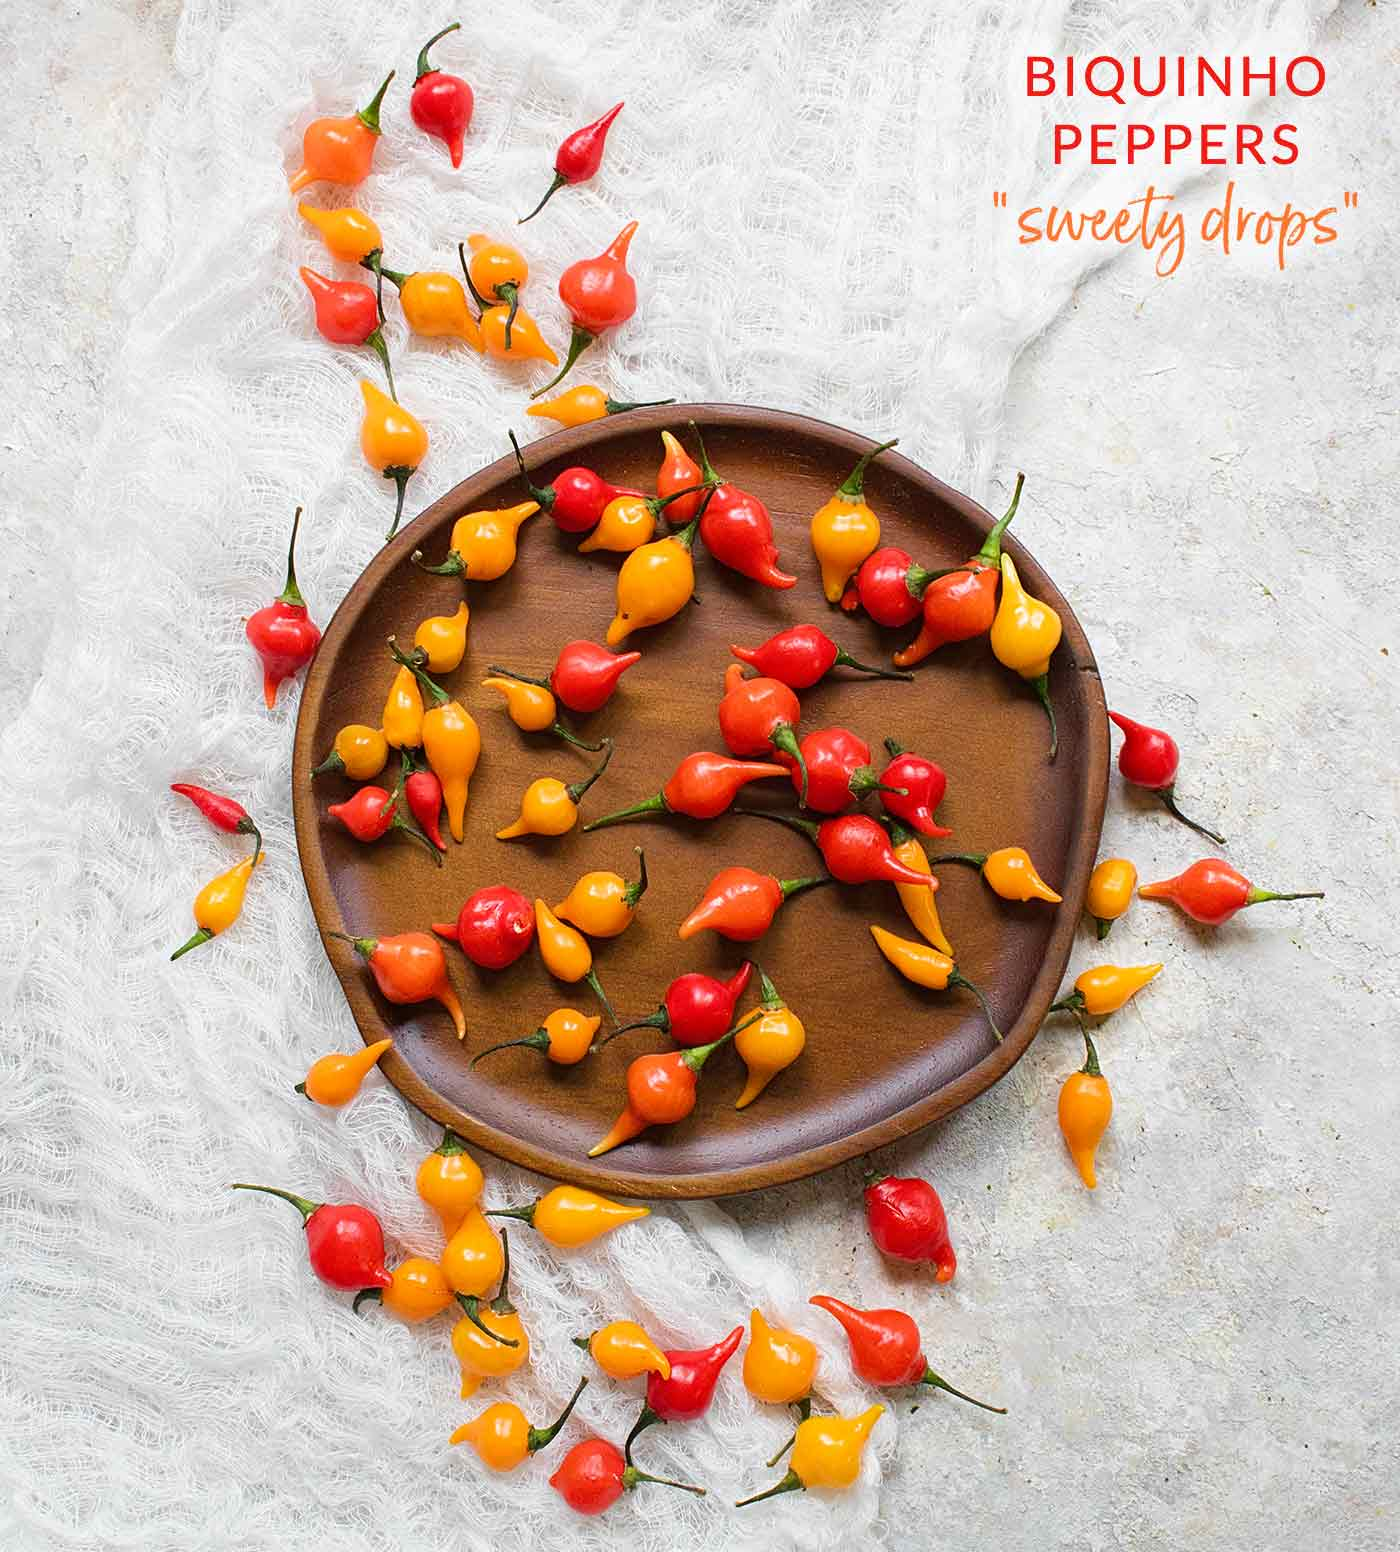 A scattering of red and yellow Biquinho peppers (Peruvian Sweety Drops) on a wooden plate.